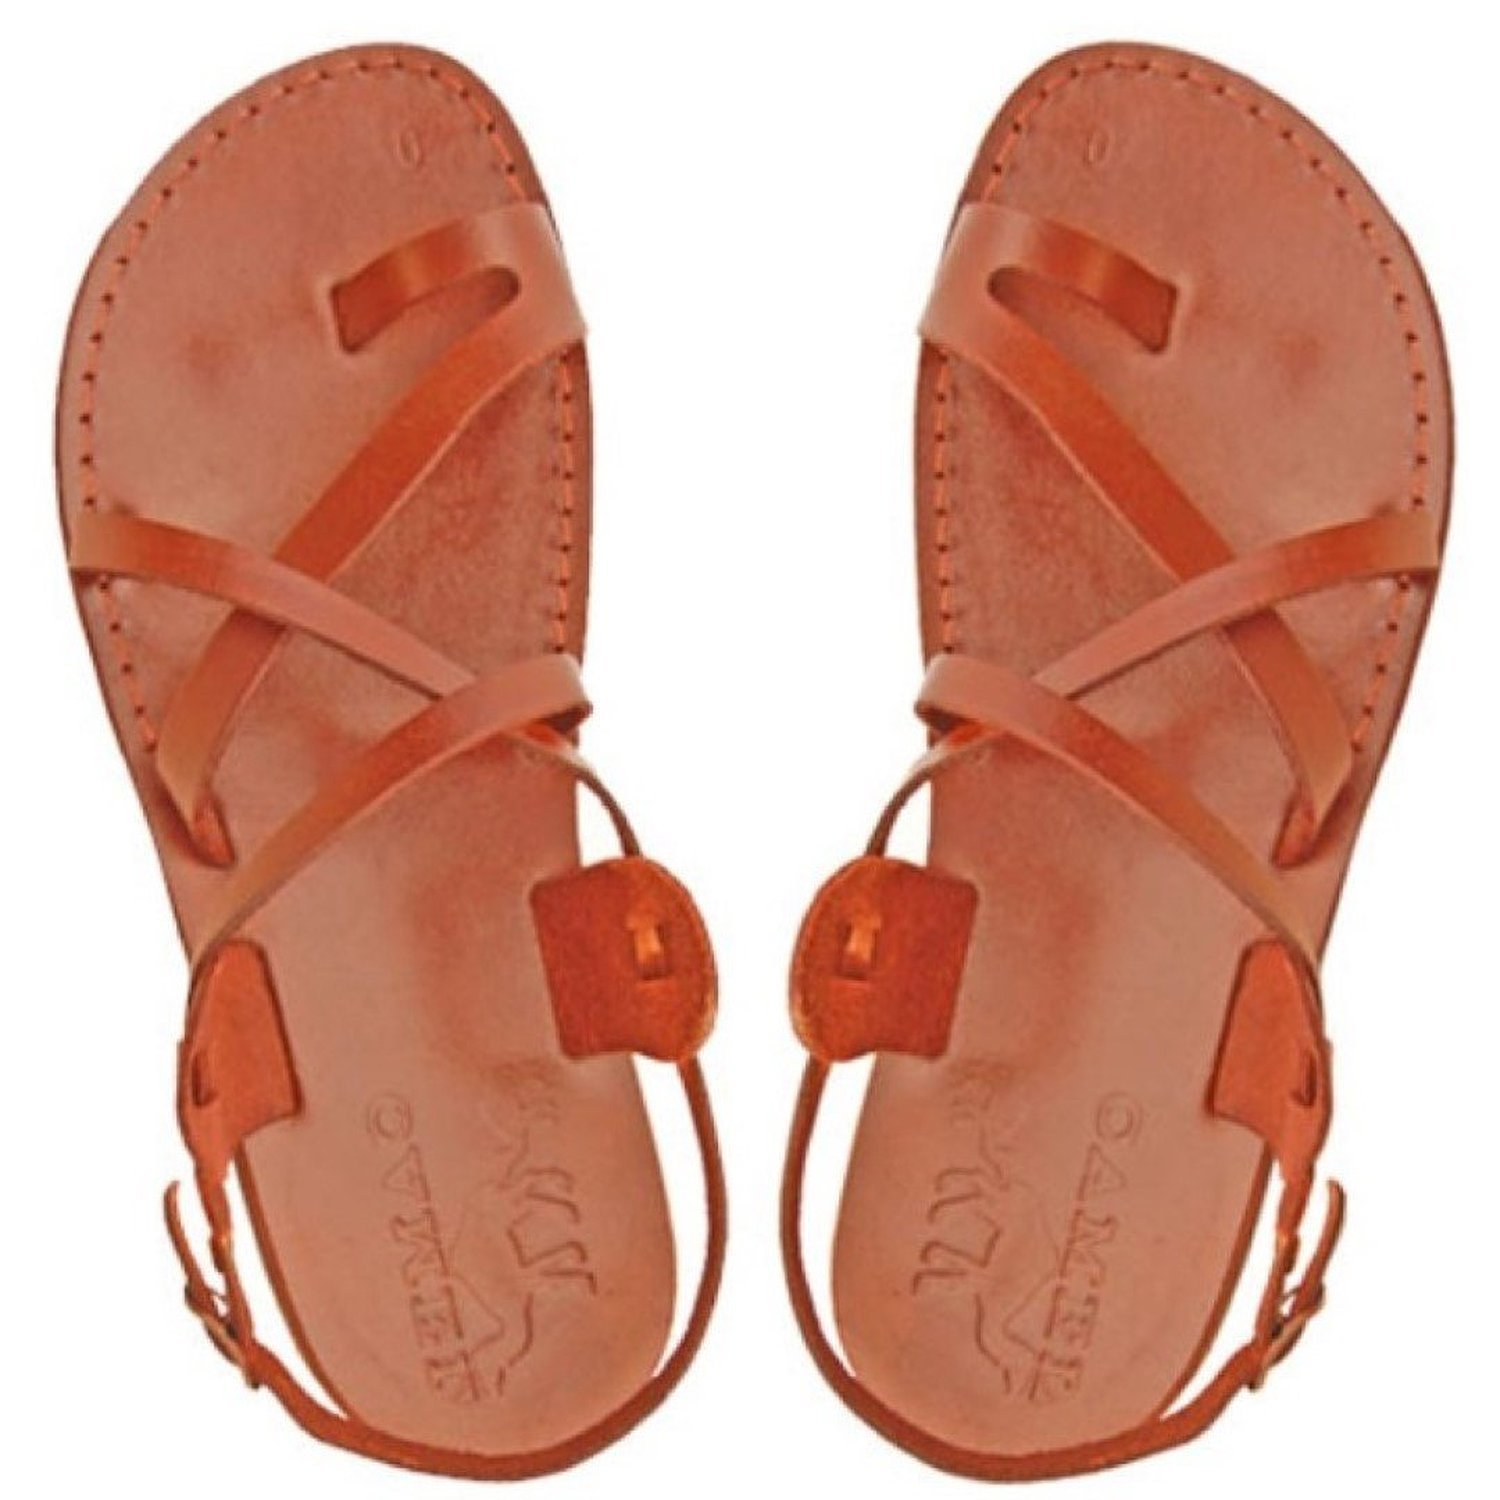 4a0aa8d06b1bd Jesus Sandals for Men in Leather-Made in Bethlehem, Israel-Gladiator Style,  Brown